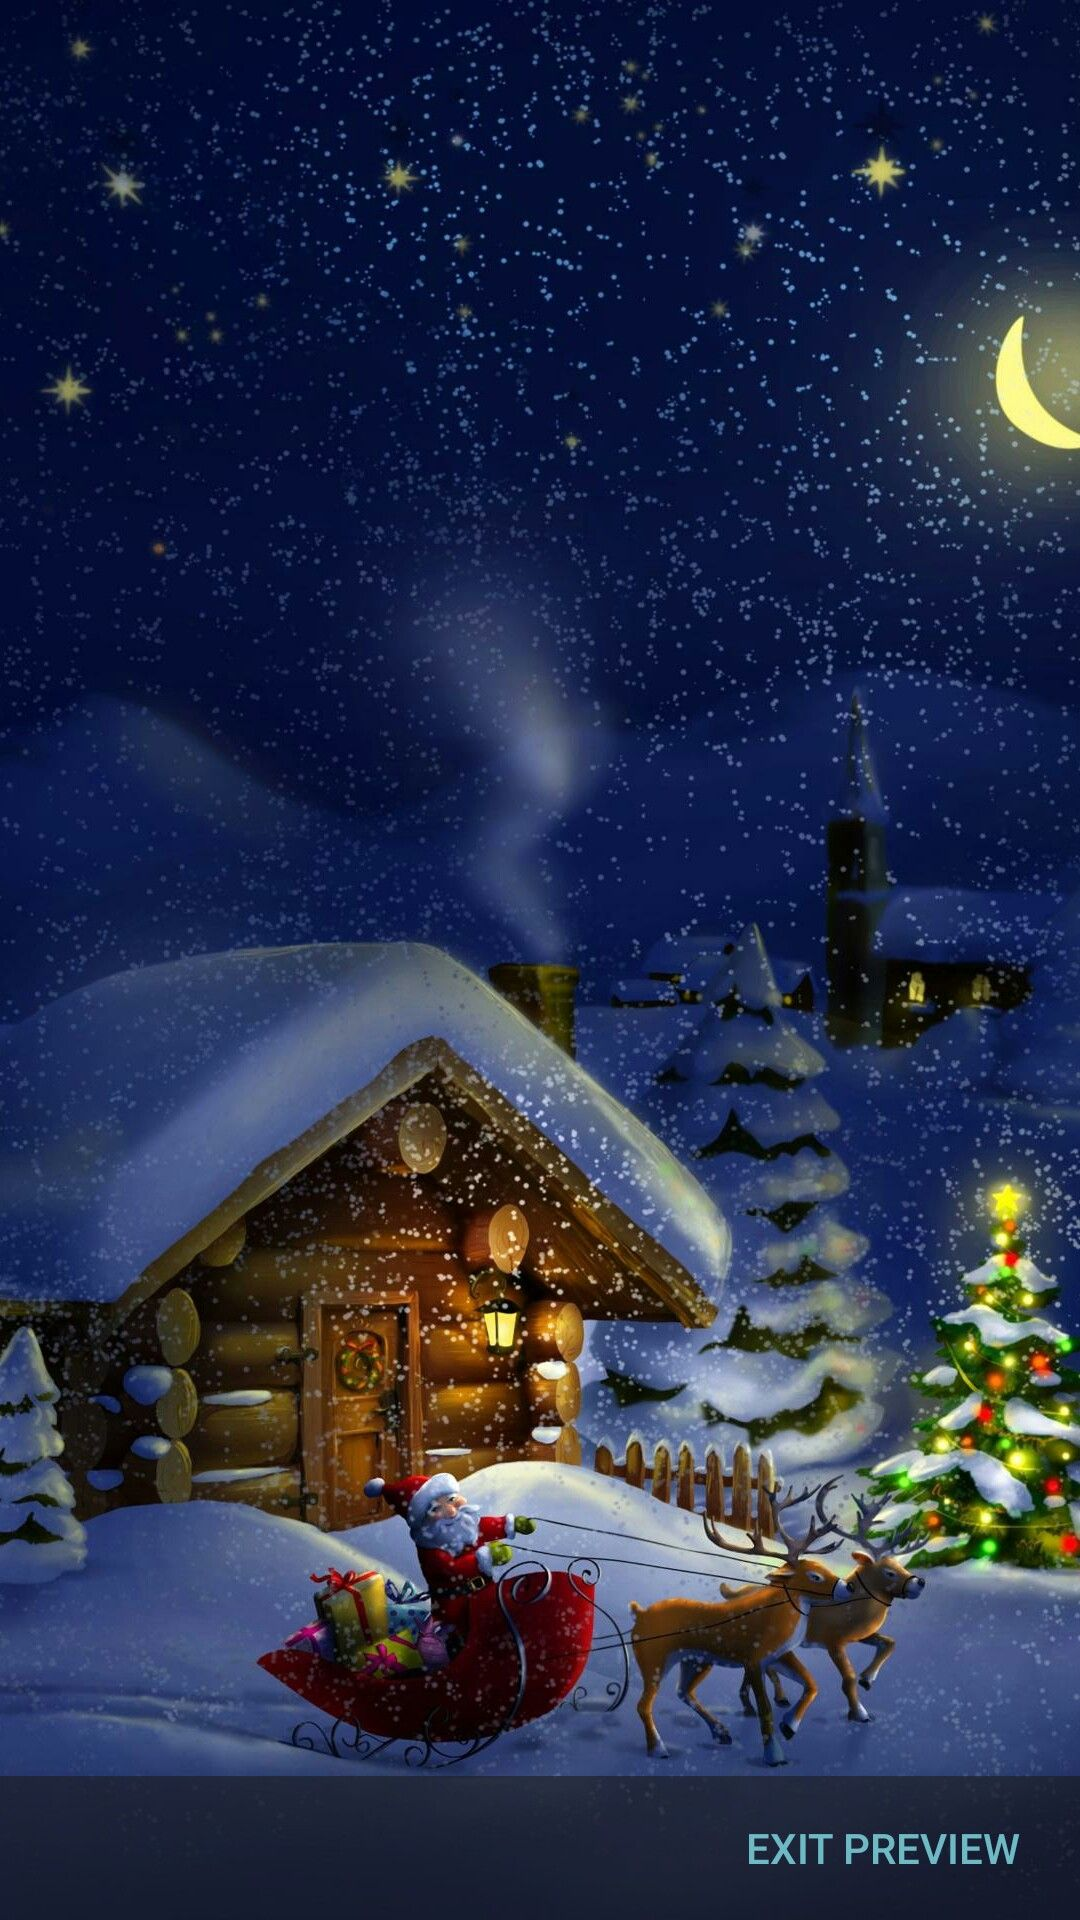 Explore Christmas Lockscreen And More